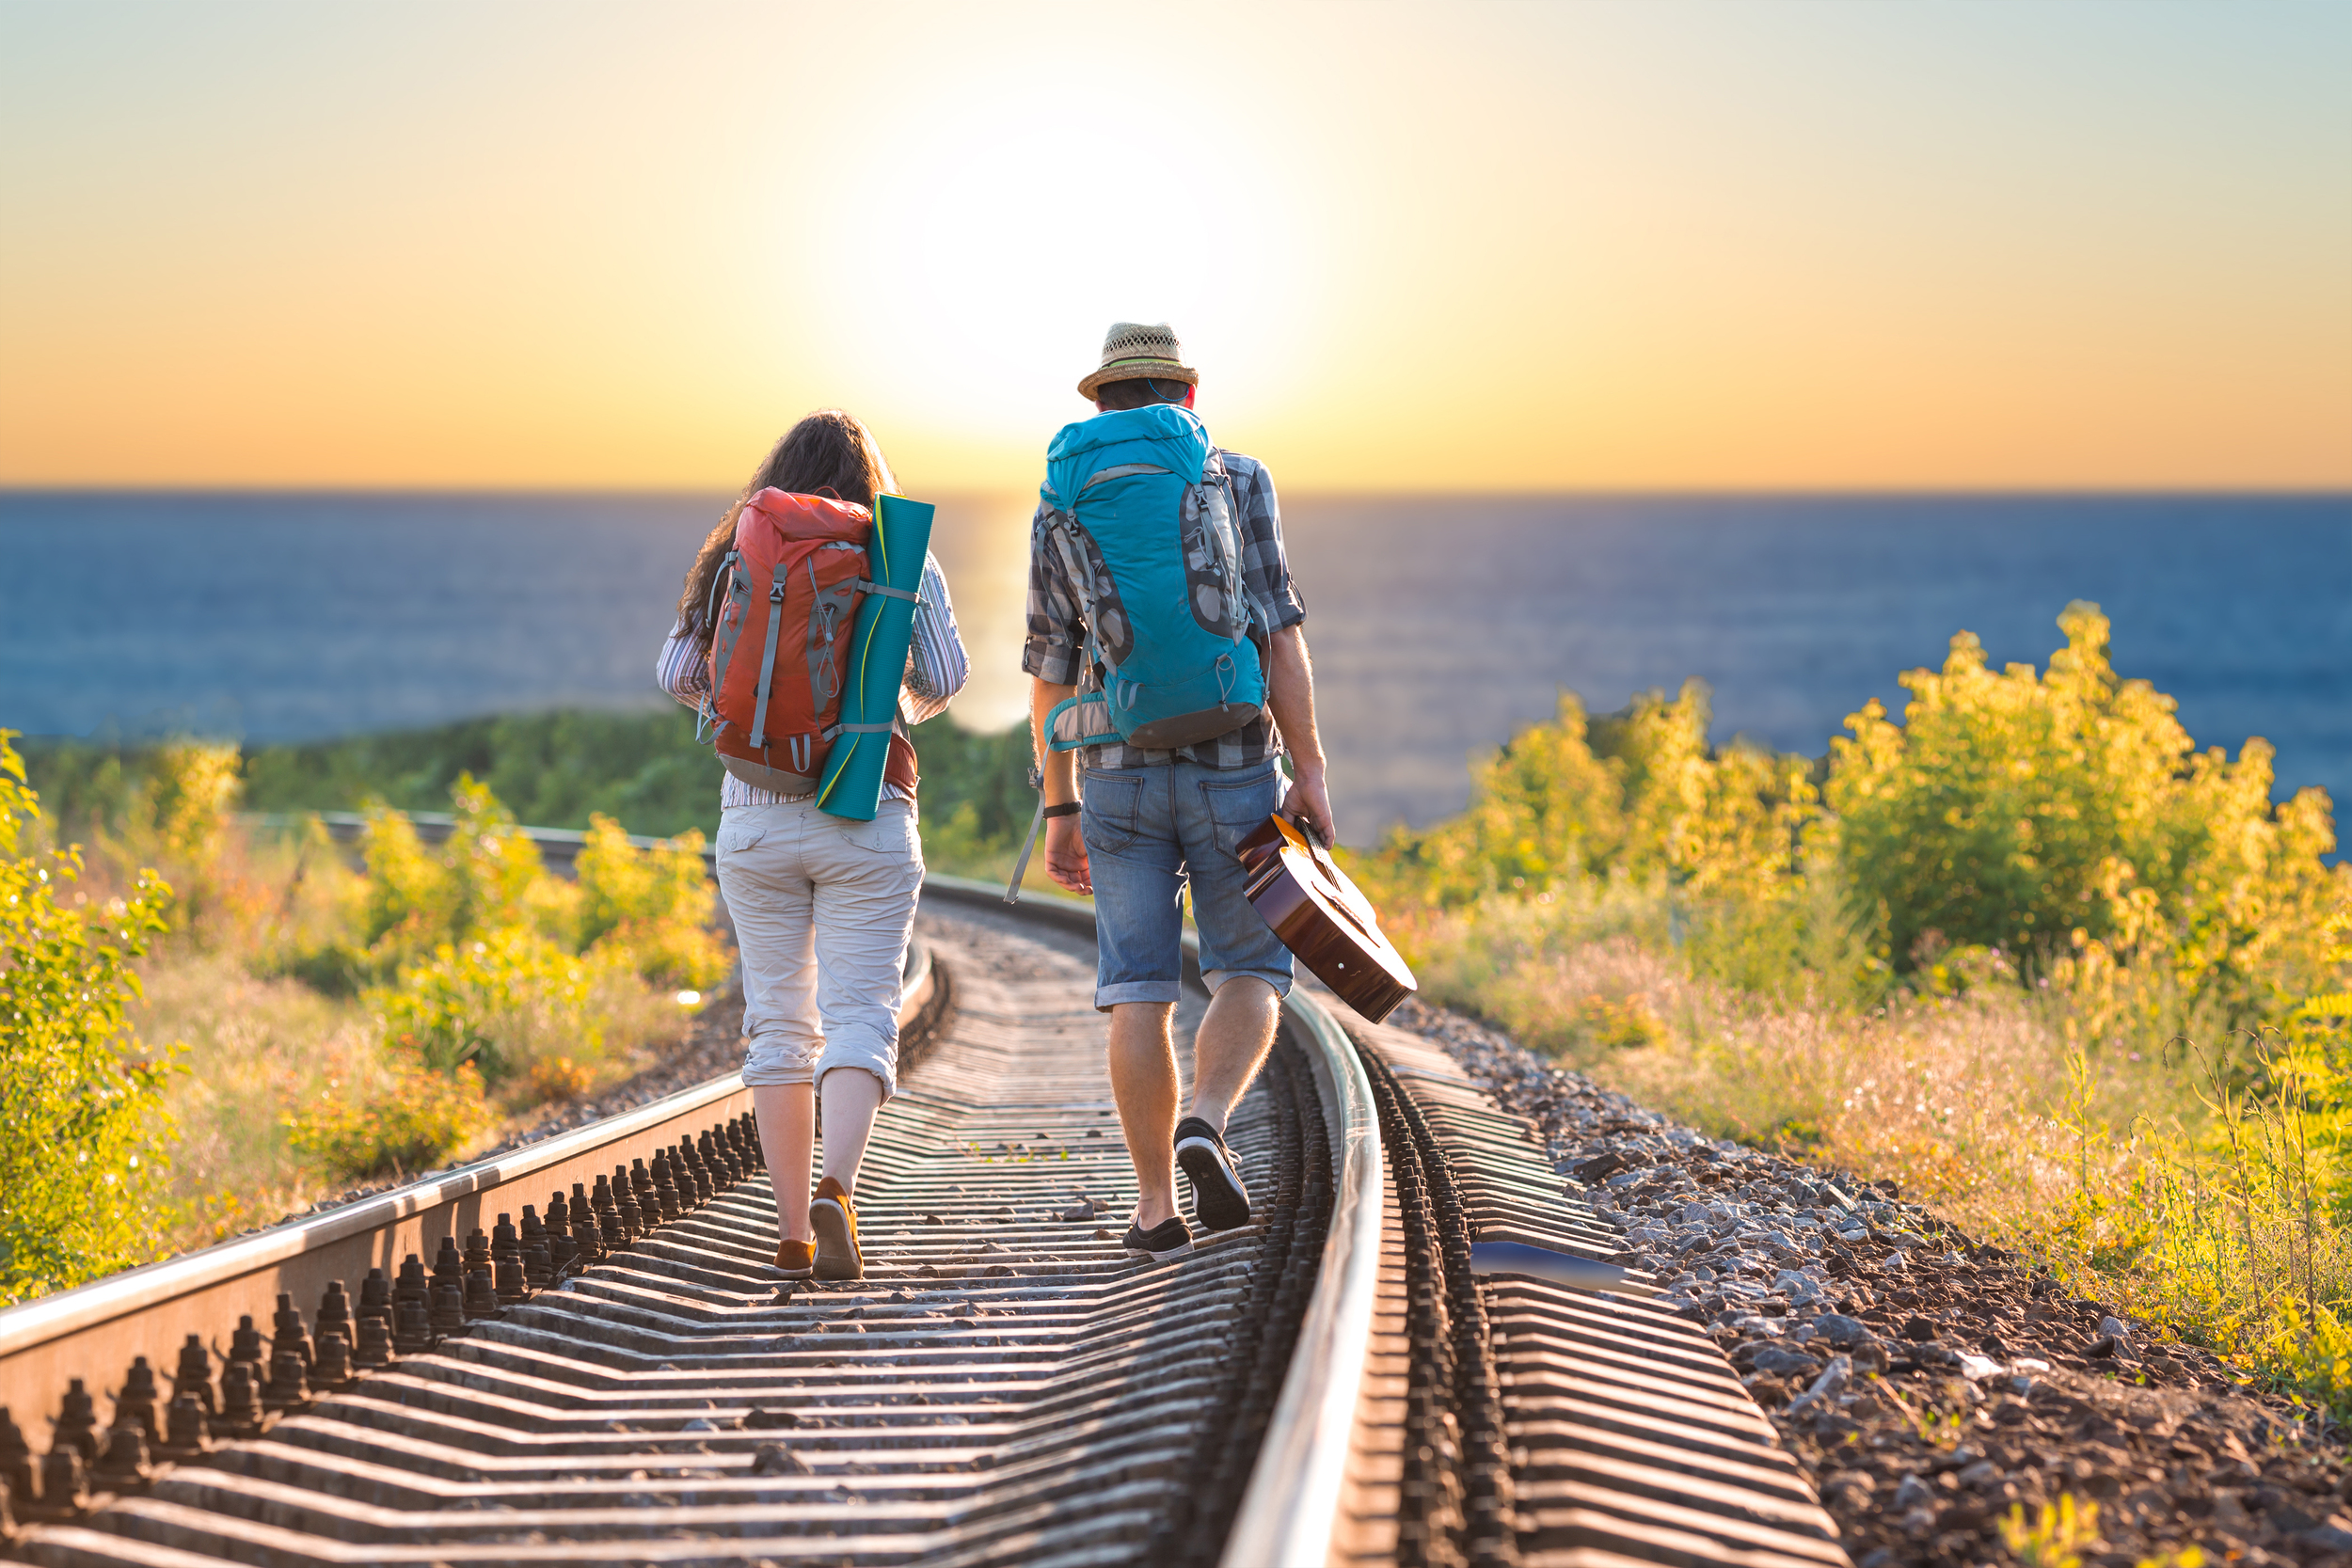 A couple backpacking down a train track